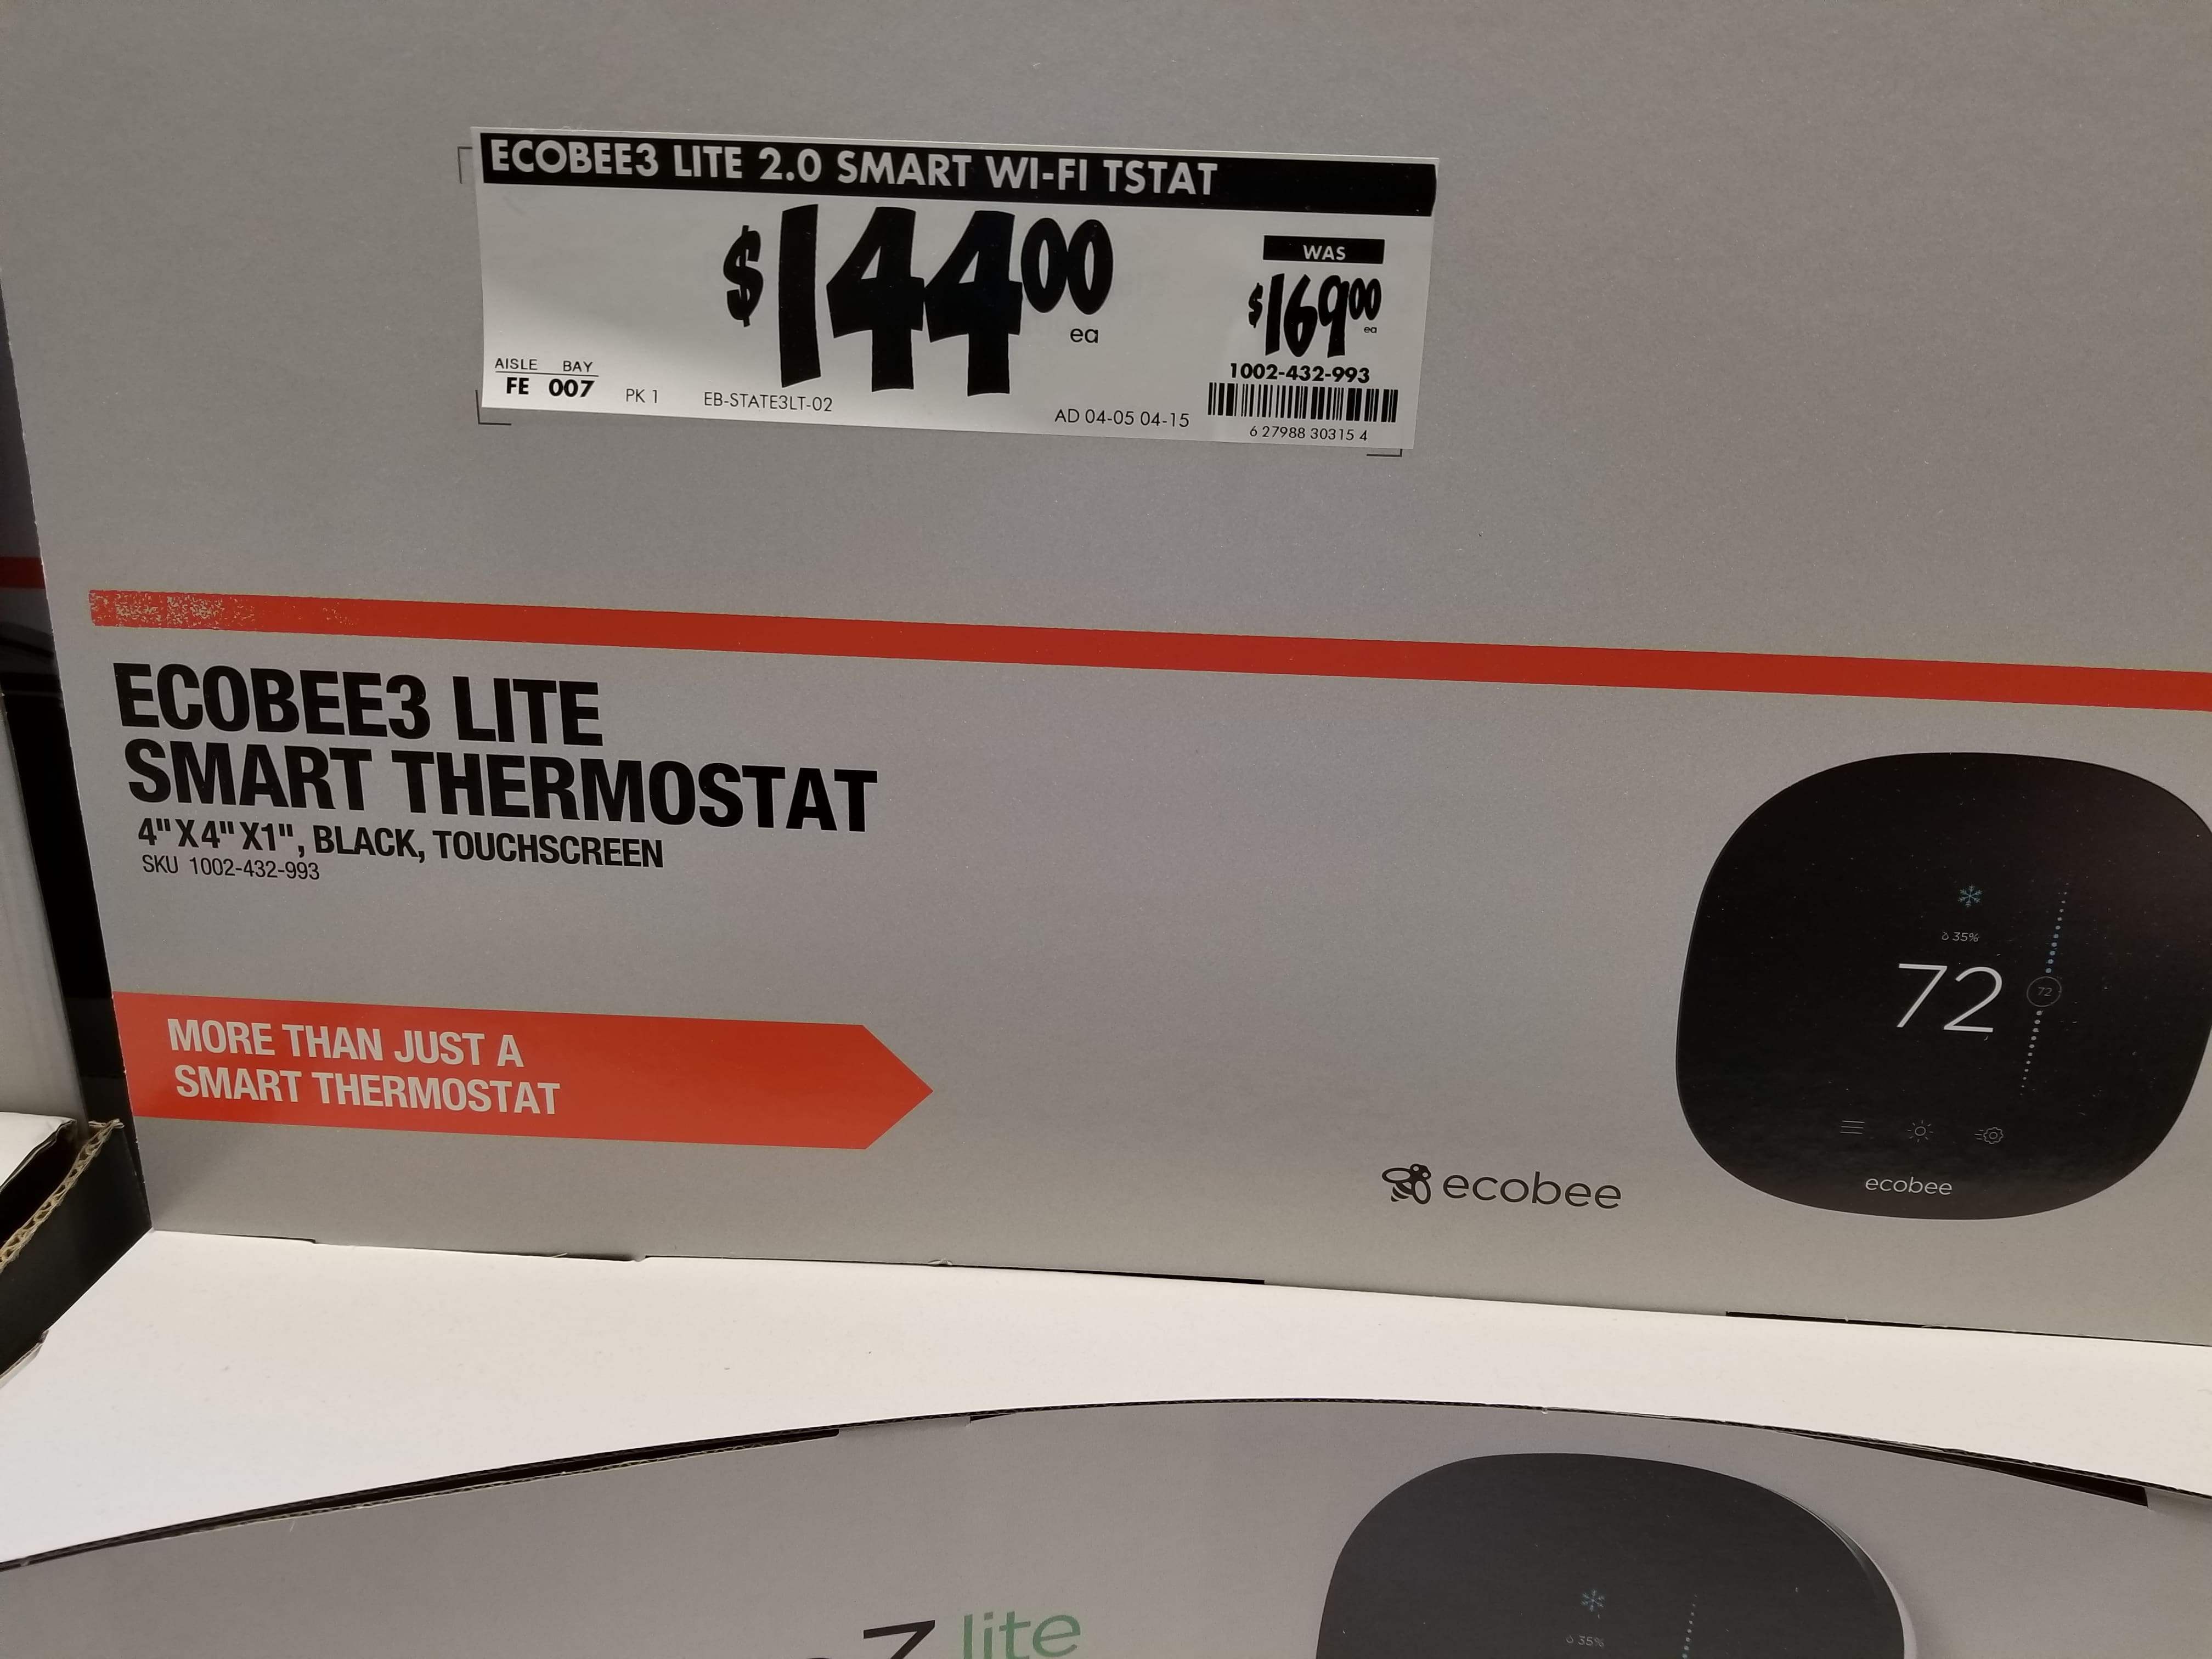 ecobee 3 lite - 7 Day Programmable Smart Thermostat $144